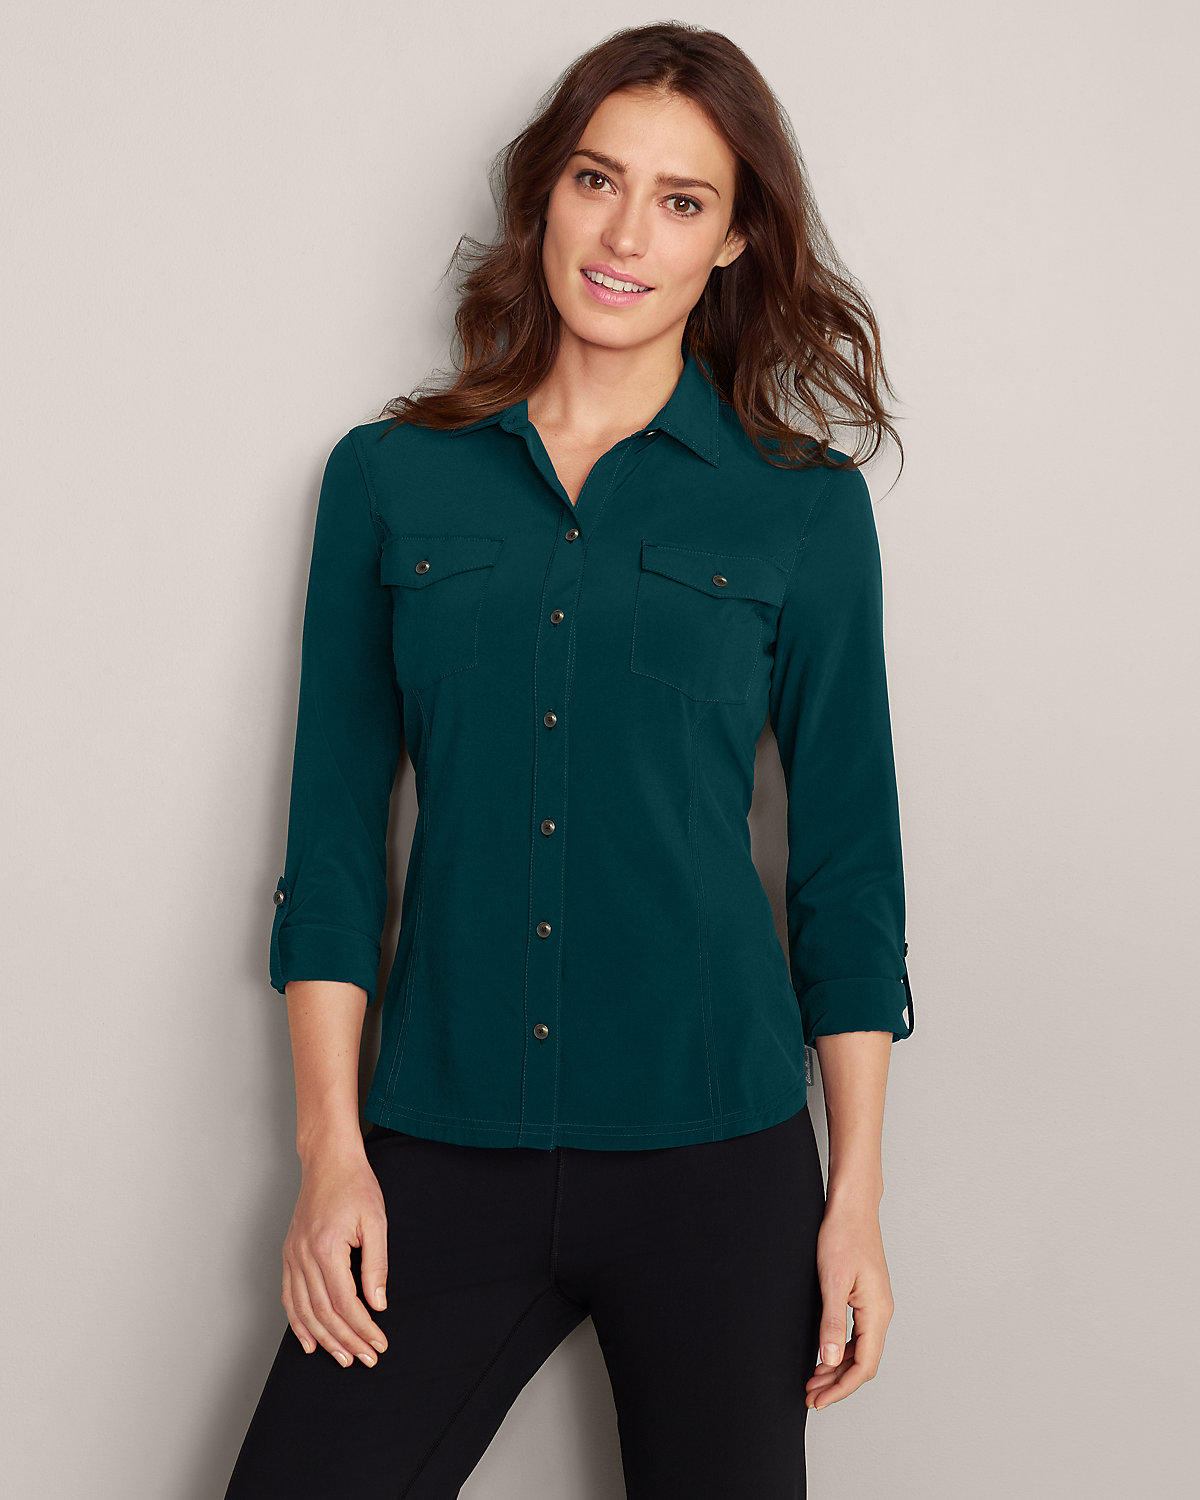 Up to 70% Off + Extra 30% OffMen's and Women's Clearance Items @ Eddie Bauer